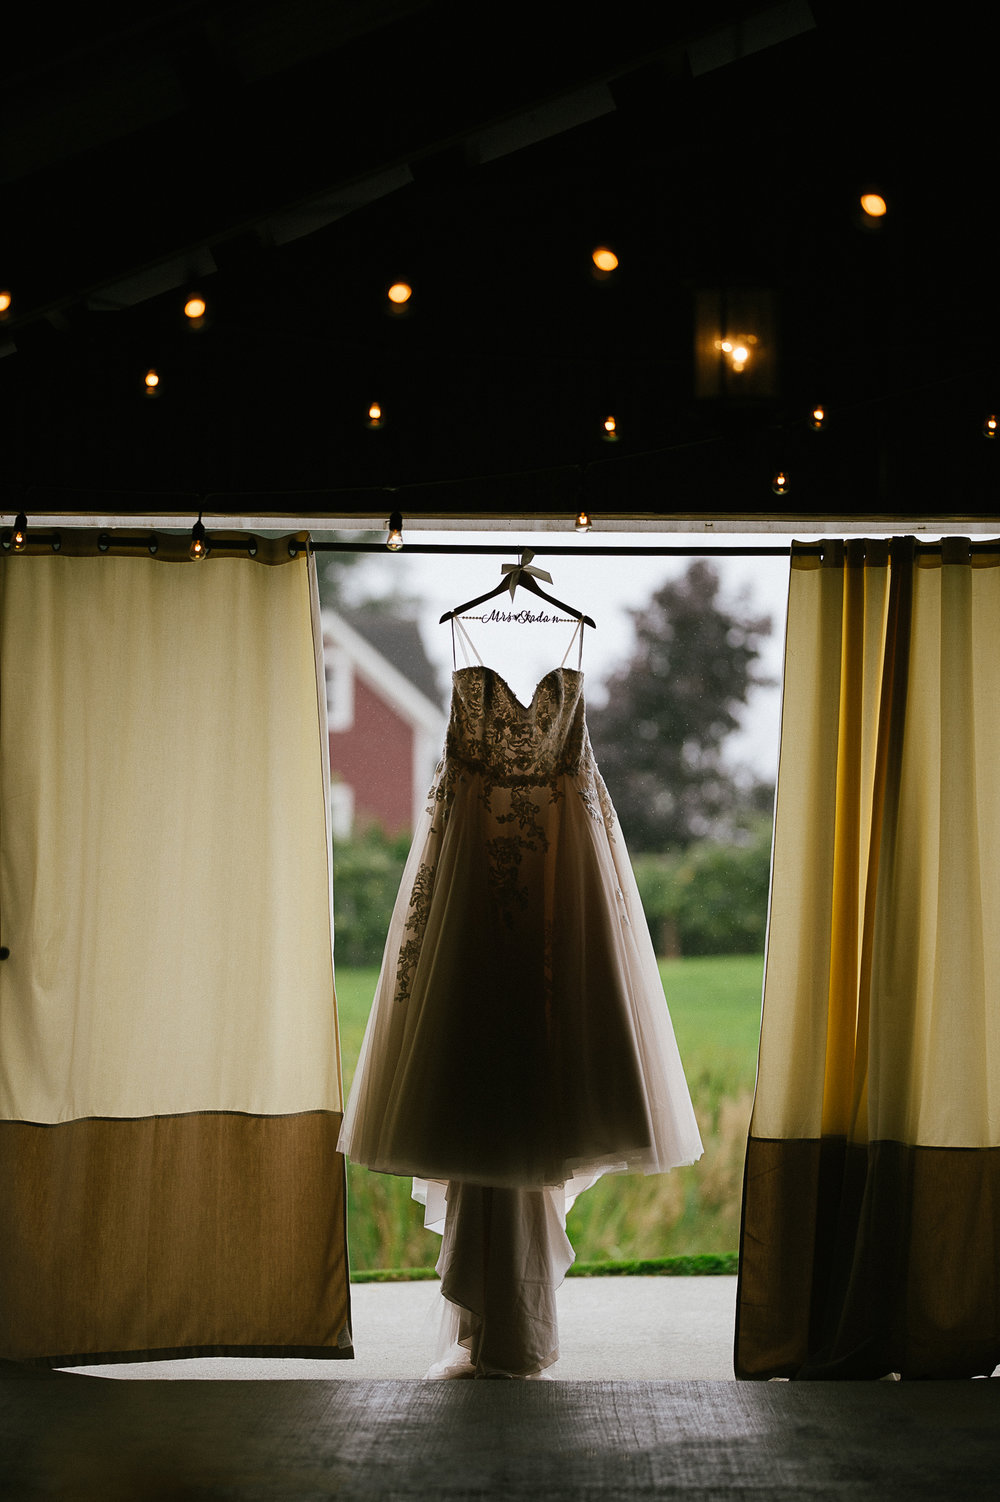 Swan Trail Farm Wedding_Sarah Schurman + Brian Skadan_Snohomish Wedding_Kelsey Lane Photography-5563 copy.jpg